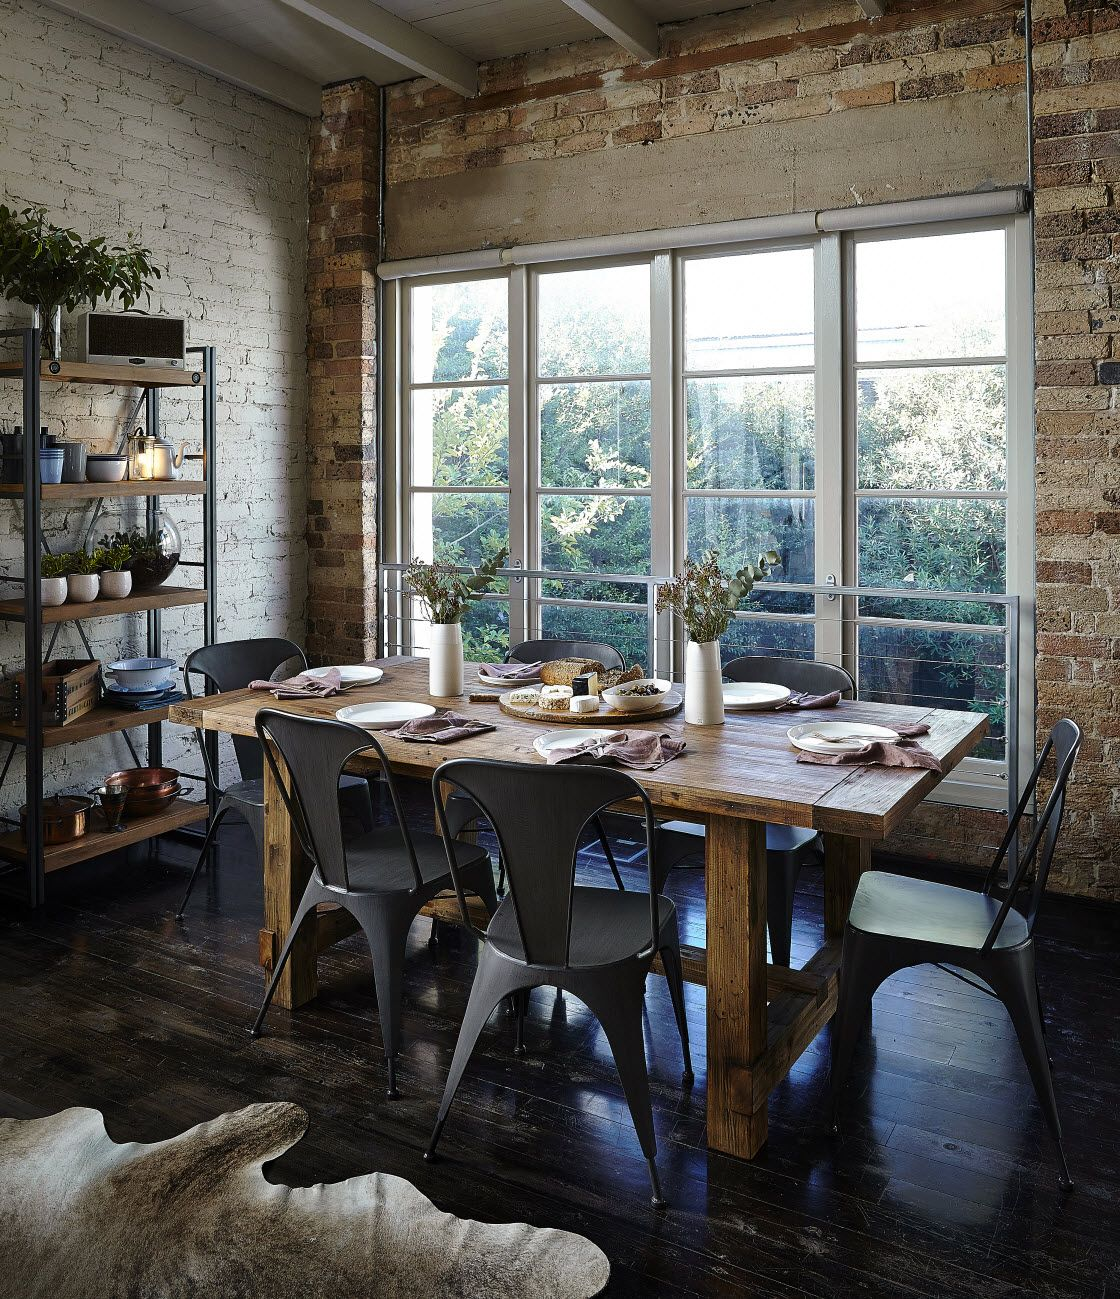 Wonderful Industrial 7 Piece Dining Suite   For The Perfect Industrial Luxe Look |  Super A